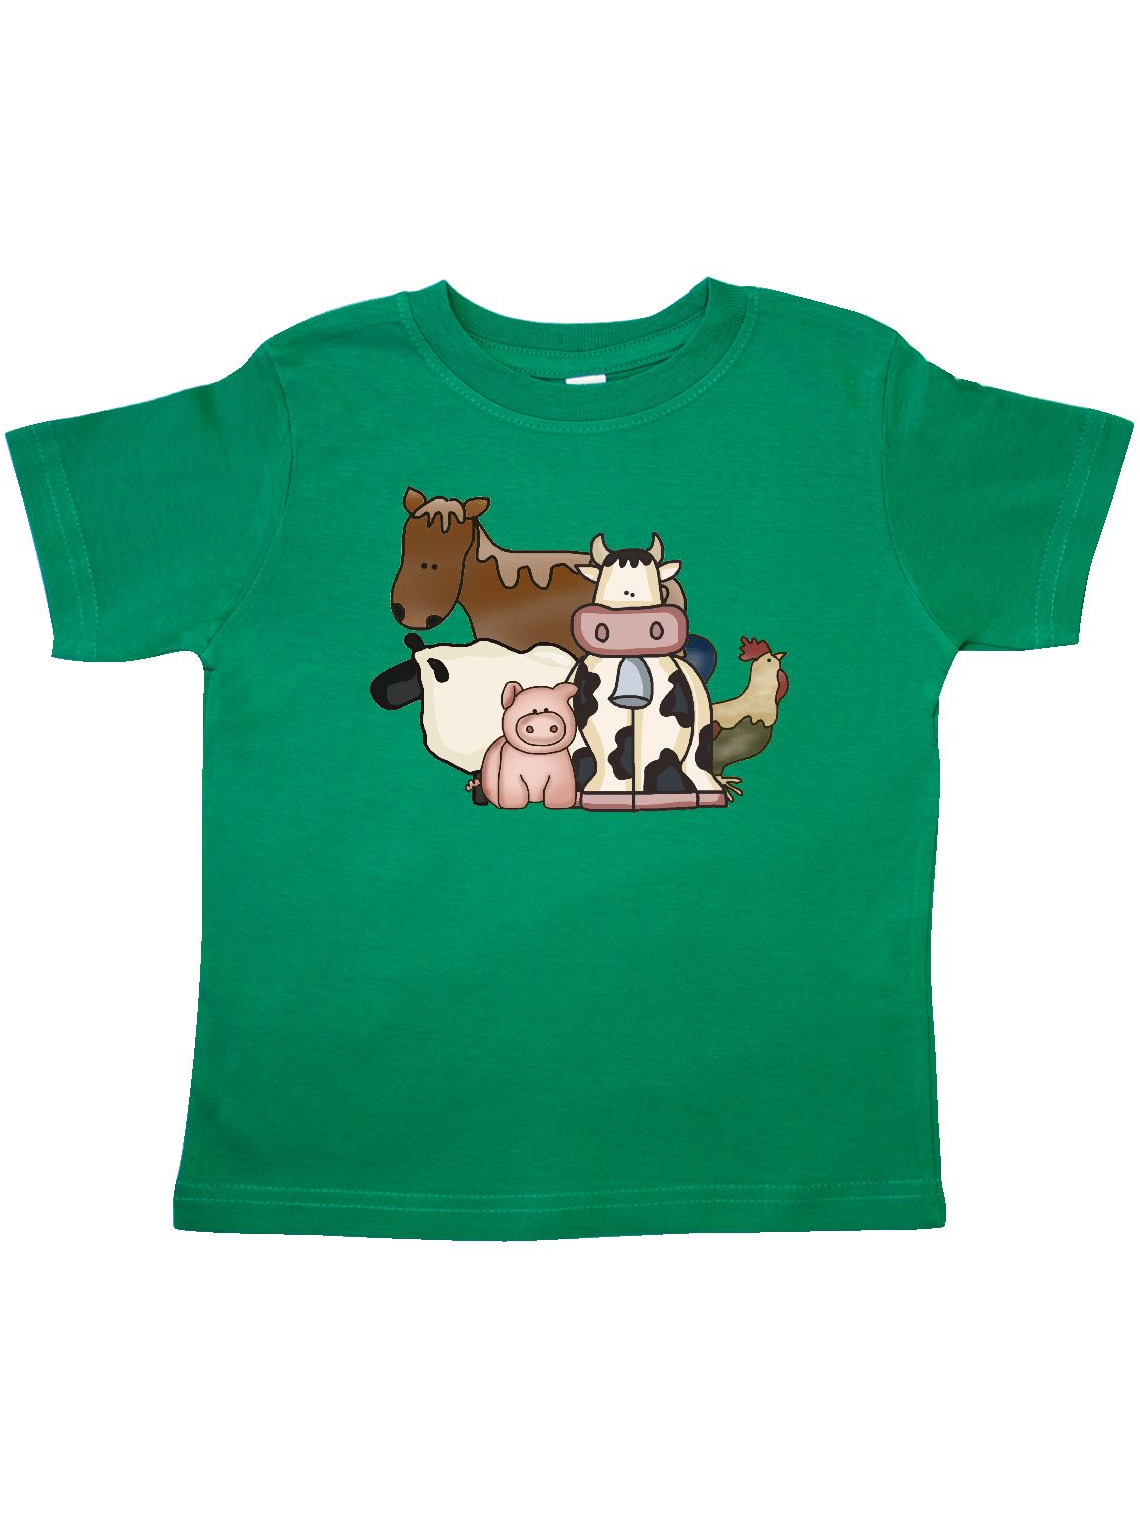 critters Toddler T-Shirt